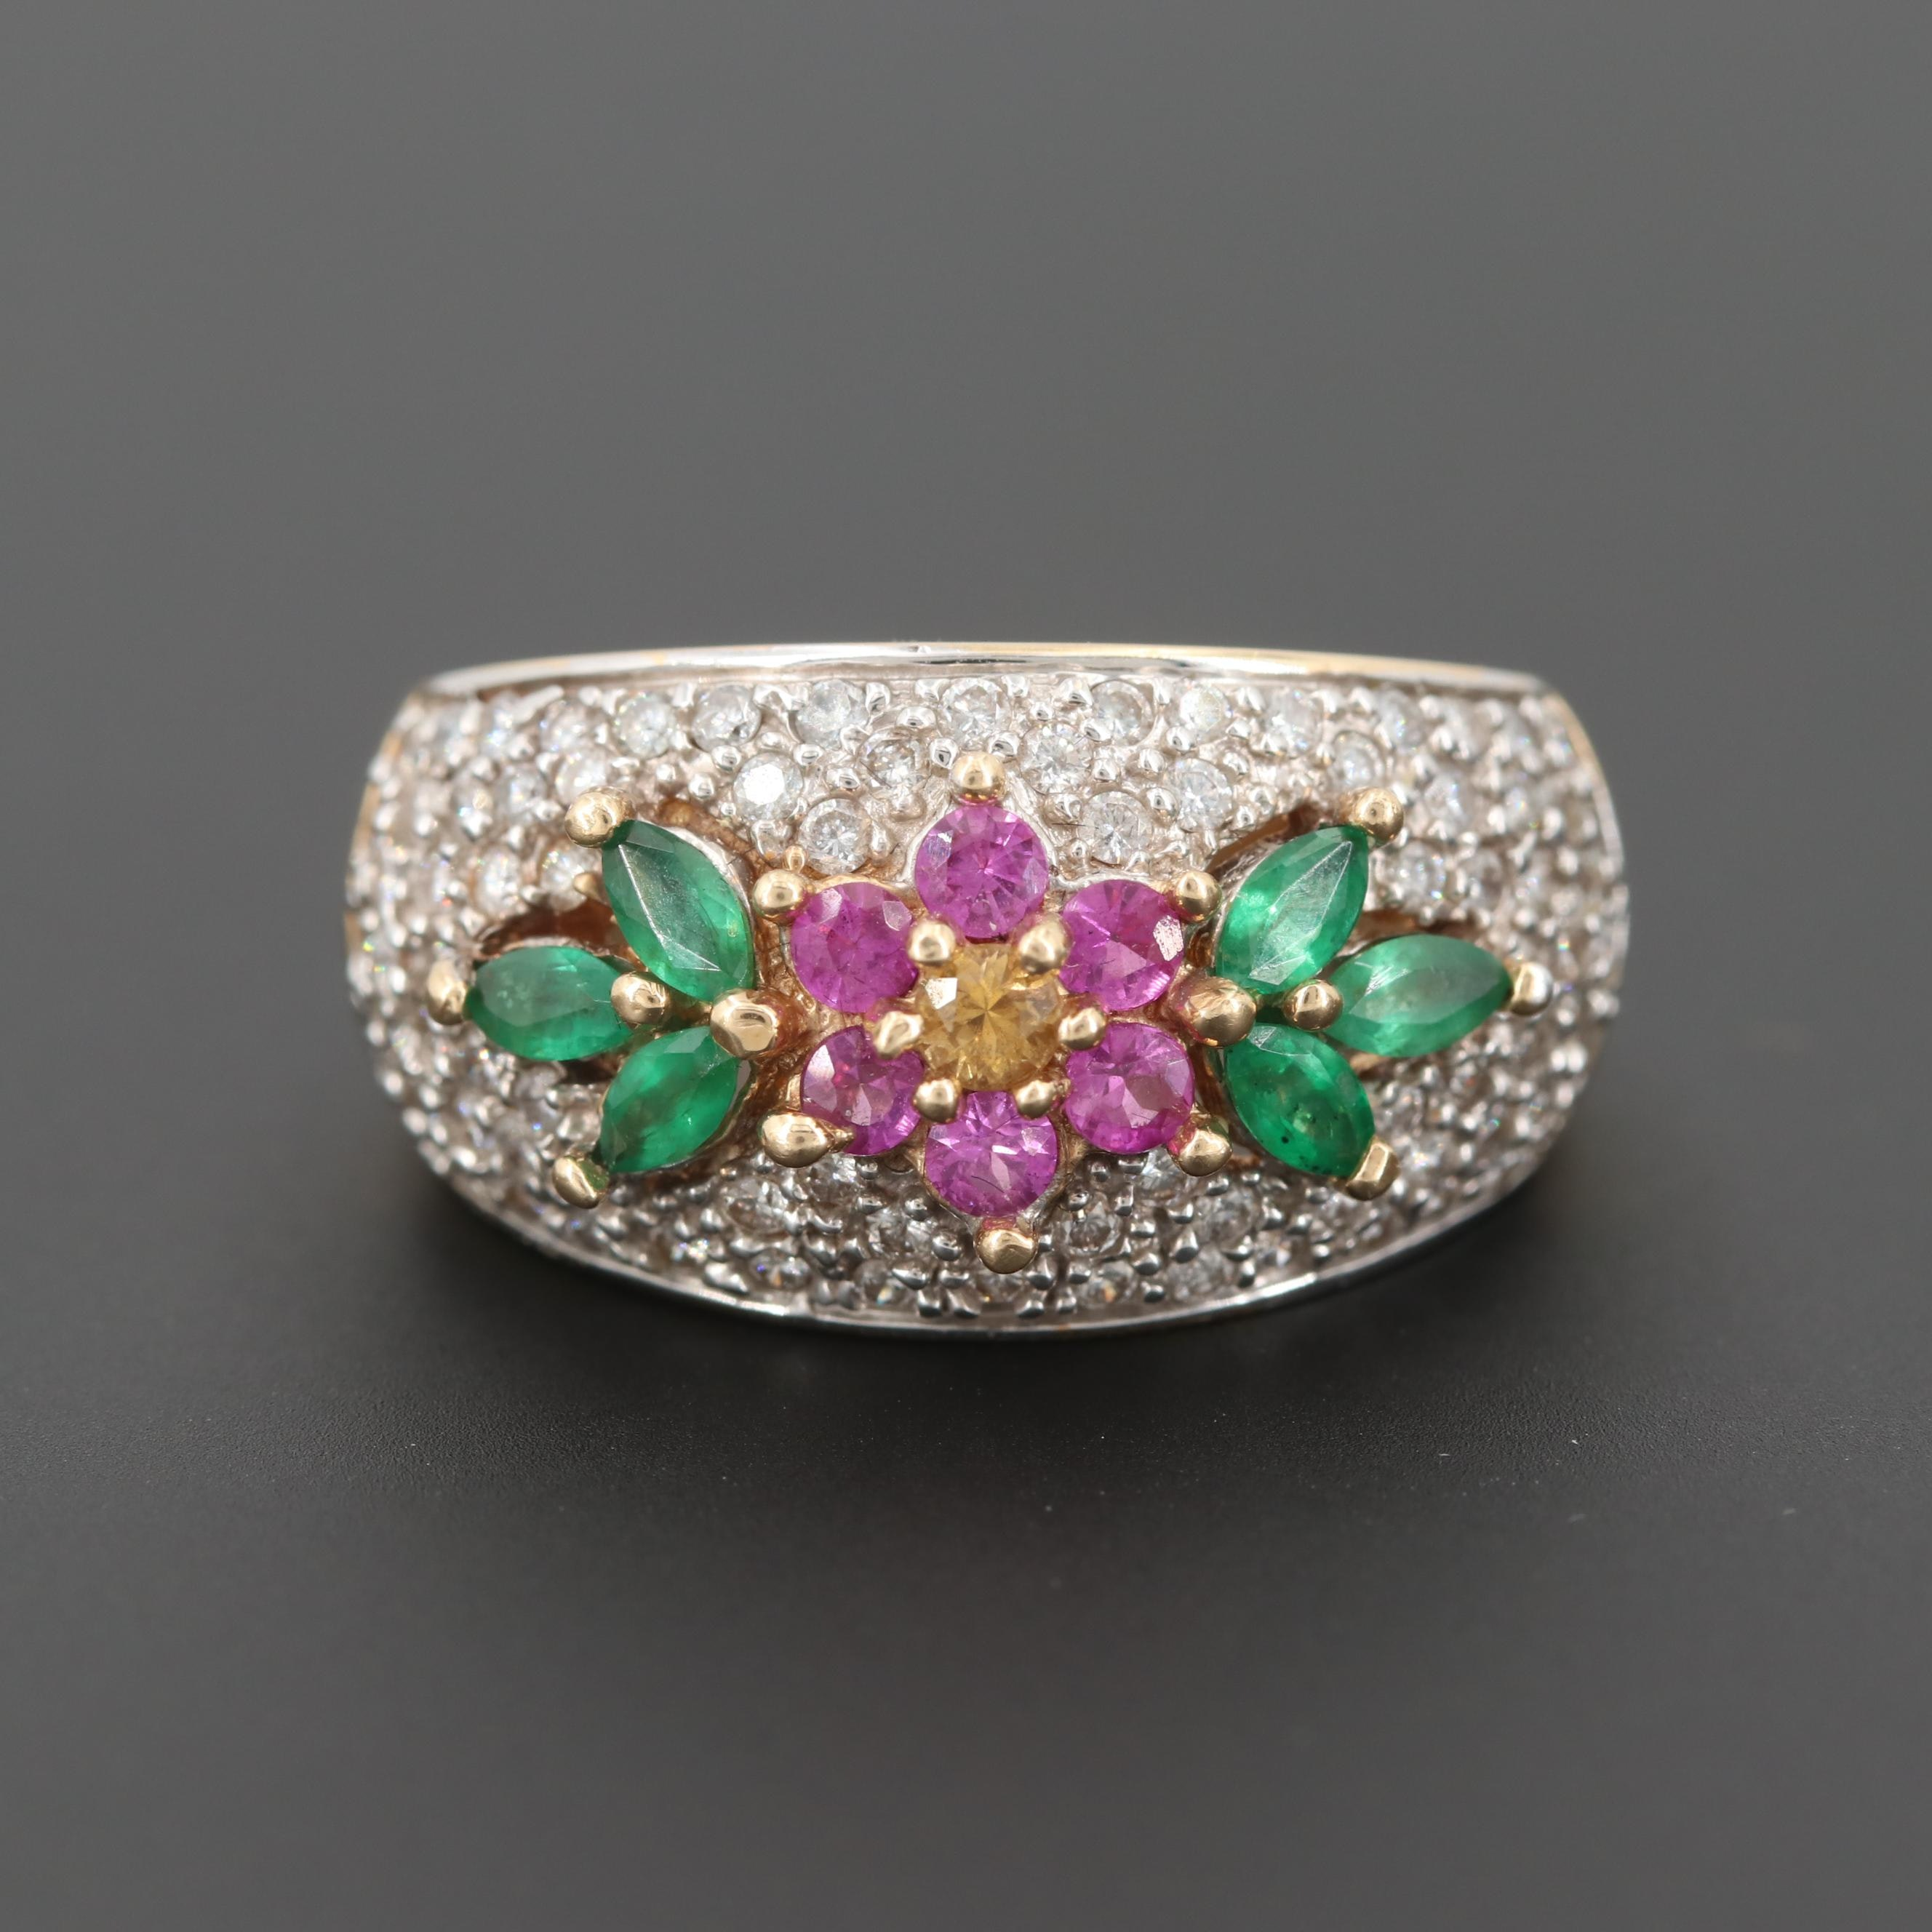 14K Yellow Gold Diamond, Emerald, Fancy Yellow and Pink Sapphire Ring